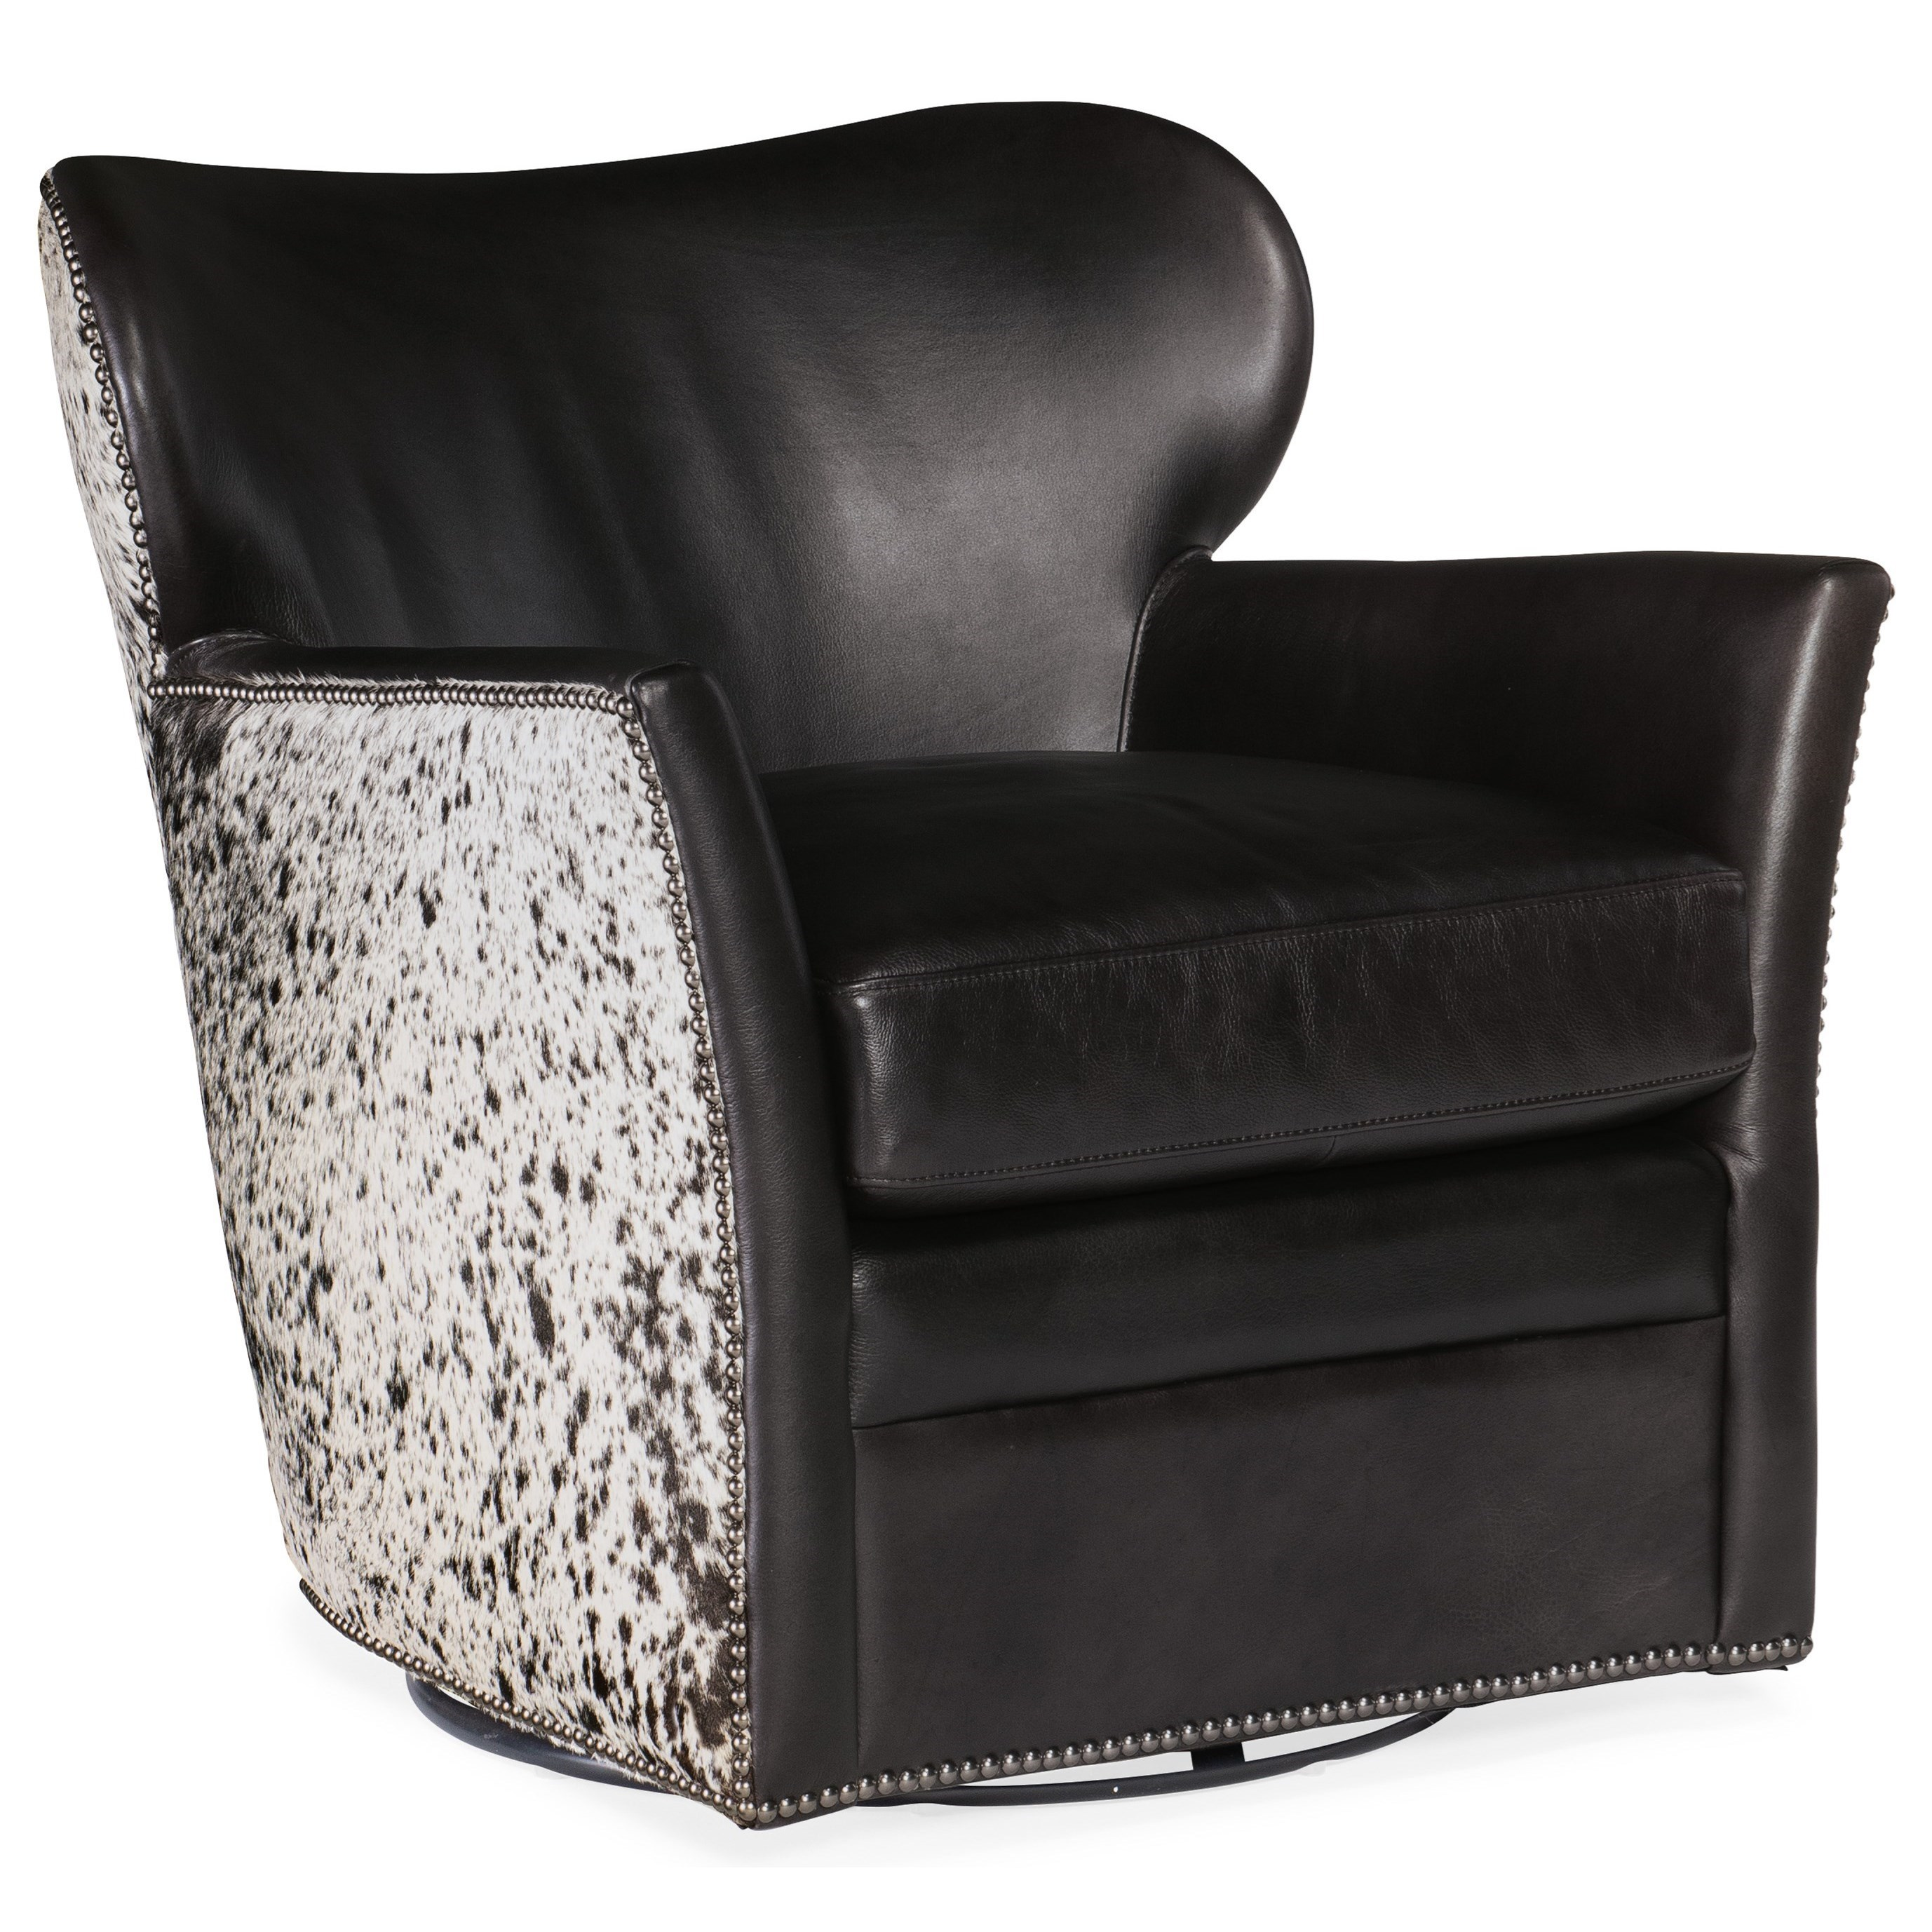 Club Chairs Kato Leather Swivel Chair with Hair on Hide by Hooker Furniture at Goods Furniture